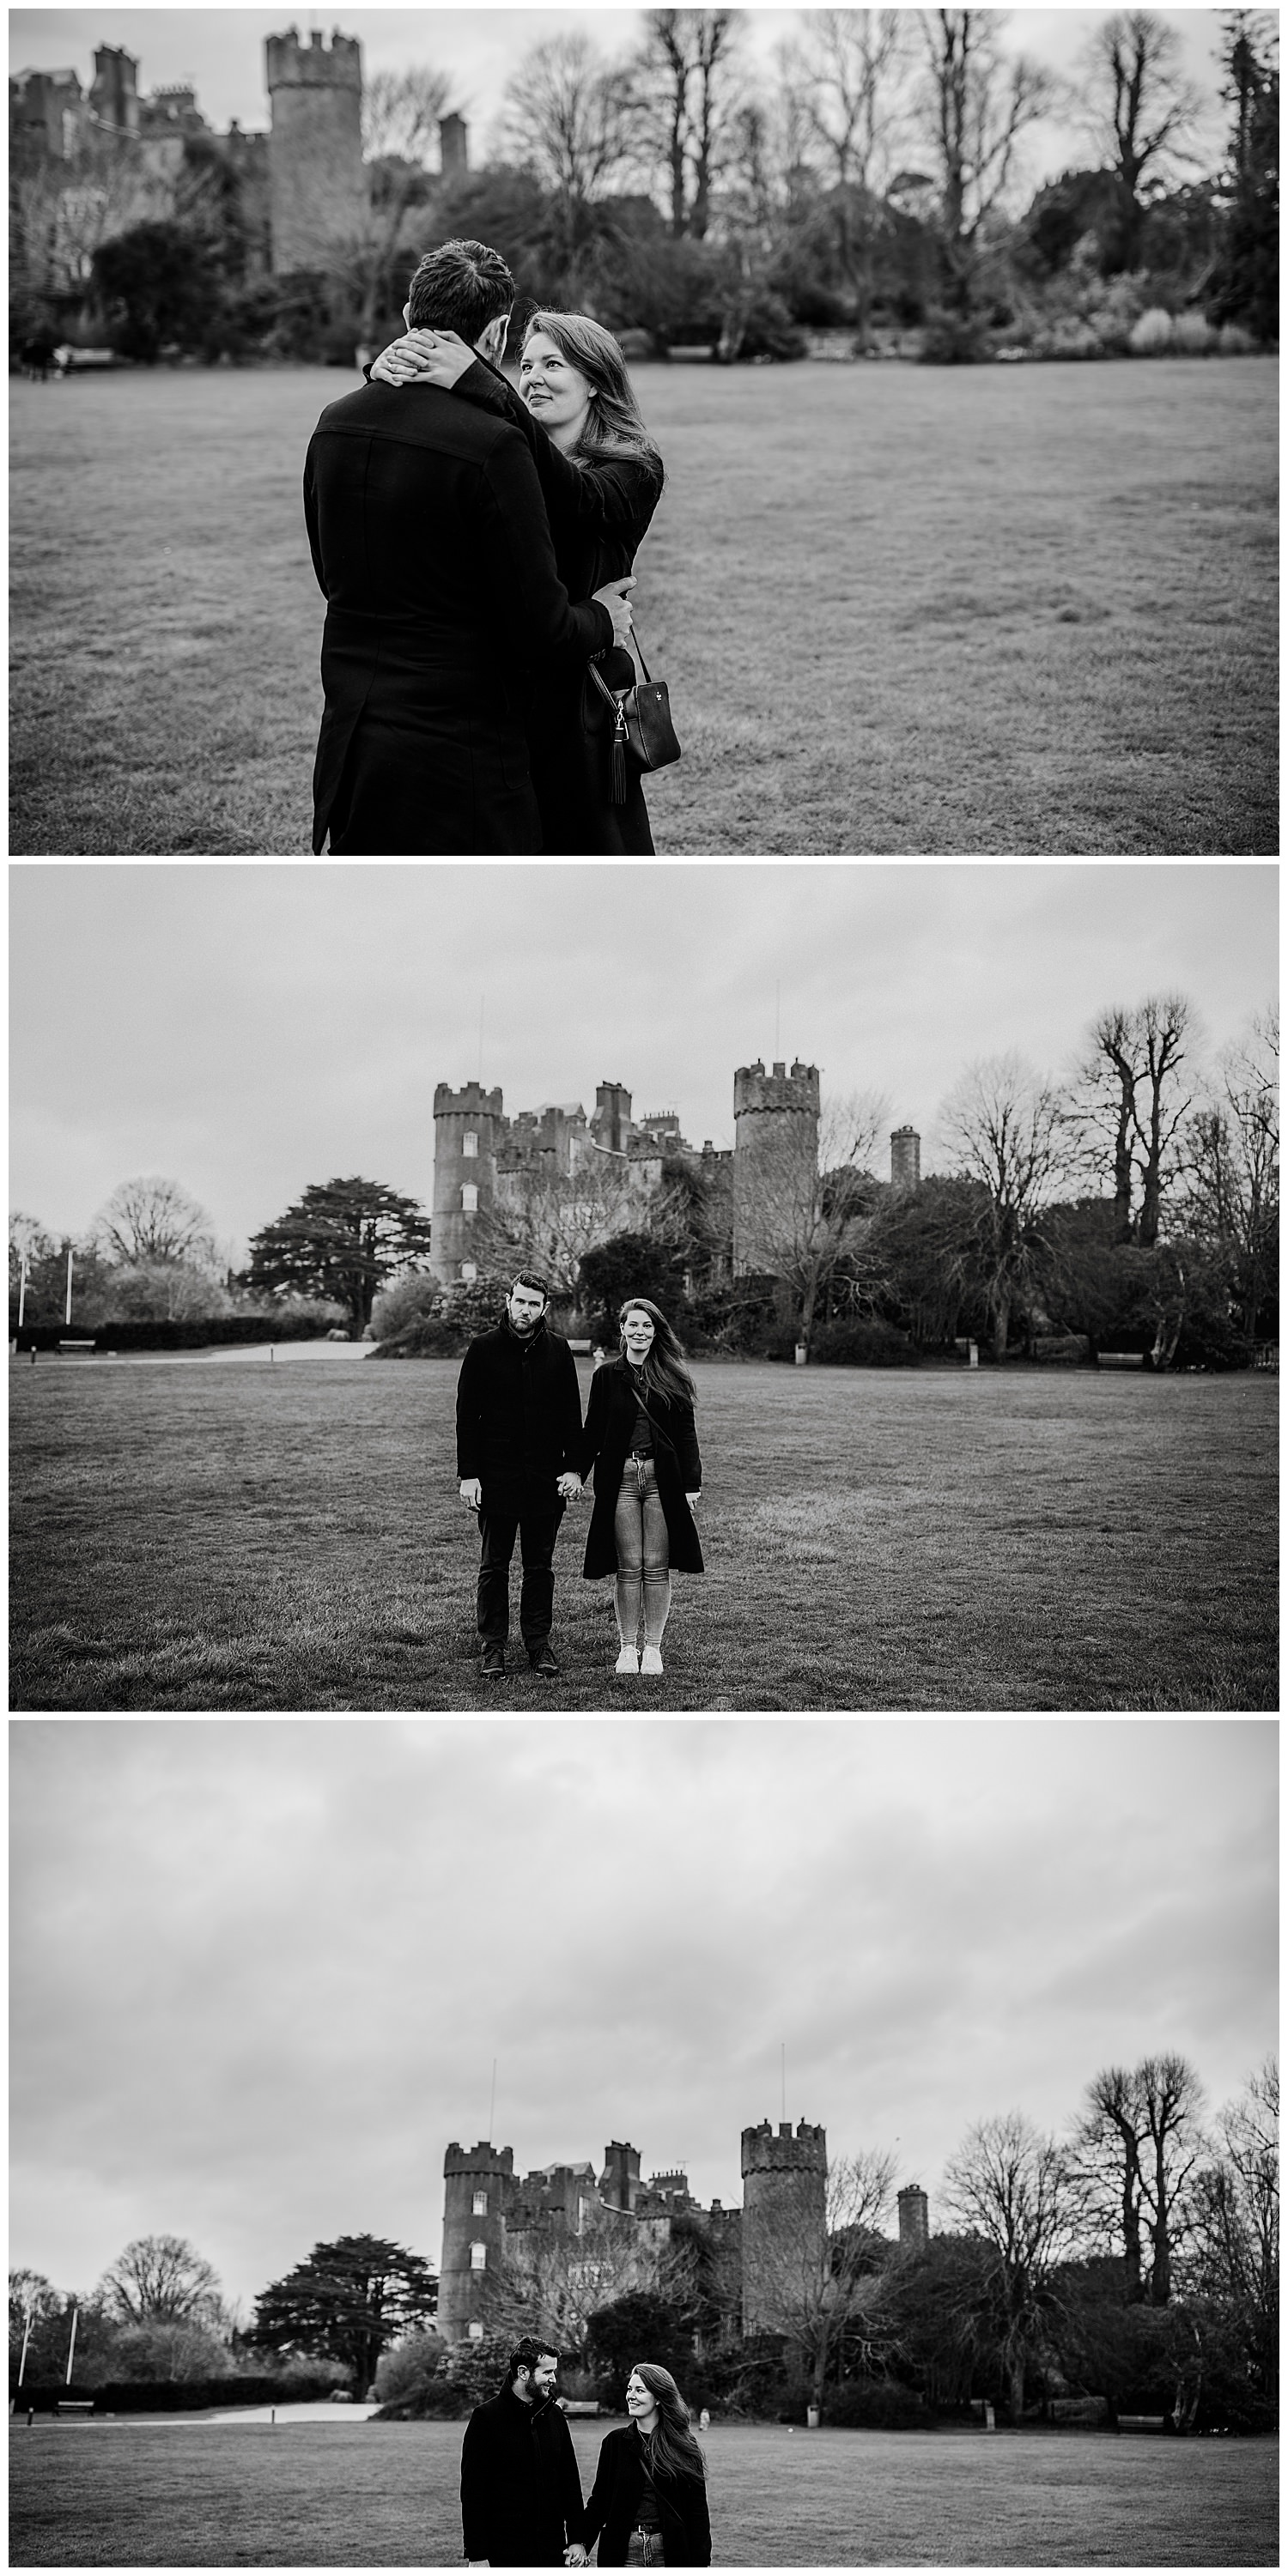 j+m_malahide_castle_engagement_session_wedding_photographer_ireland_livia_figueiredo_3.jpg